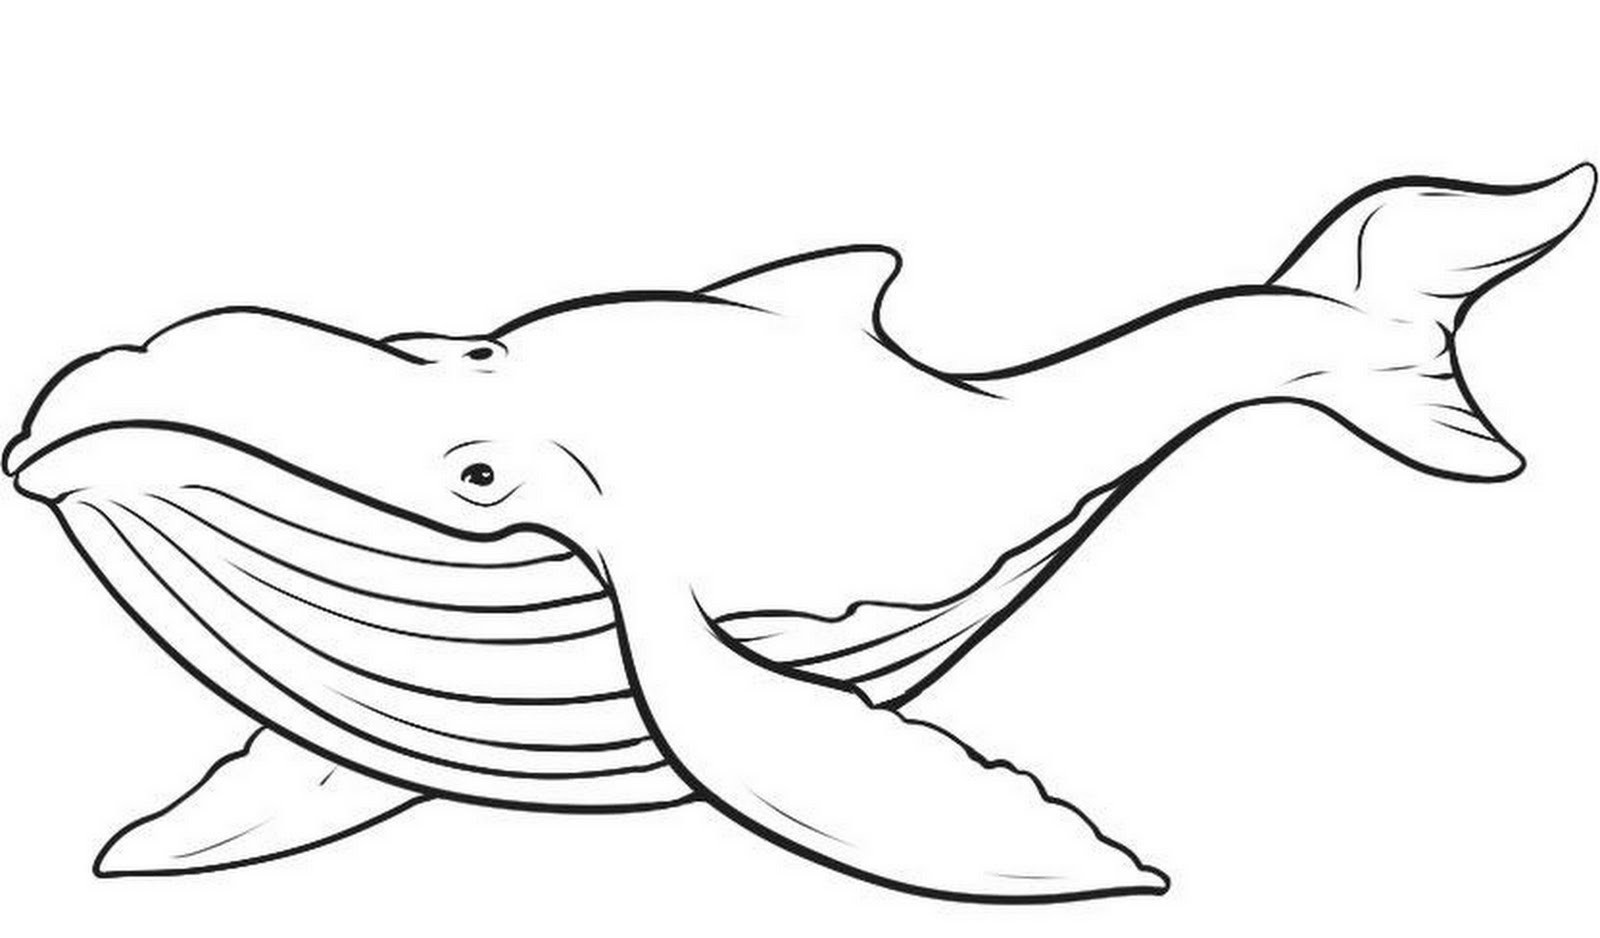 Blue Whale Coloring Pages  Free Printable Whale Coloring Pages For Kids